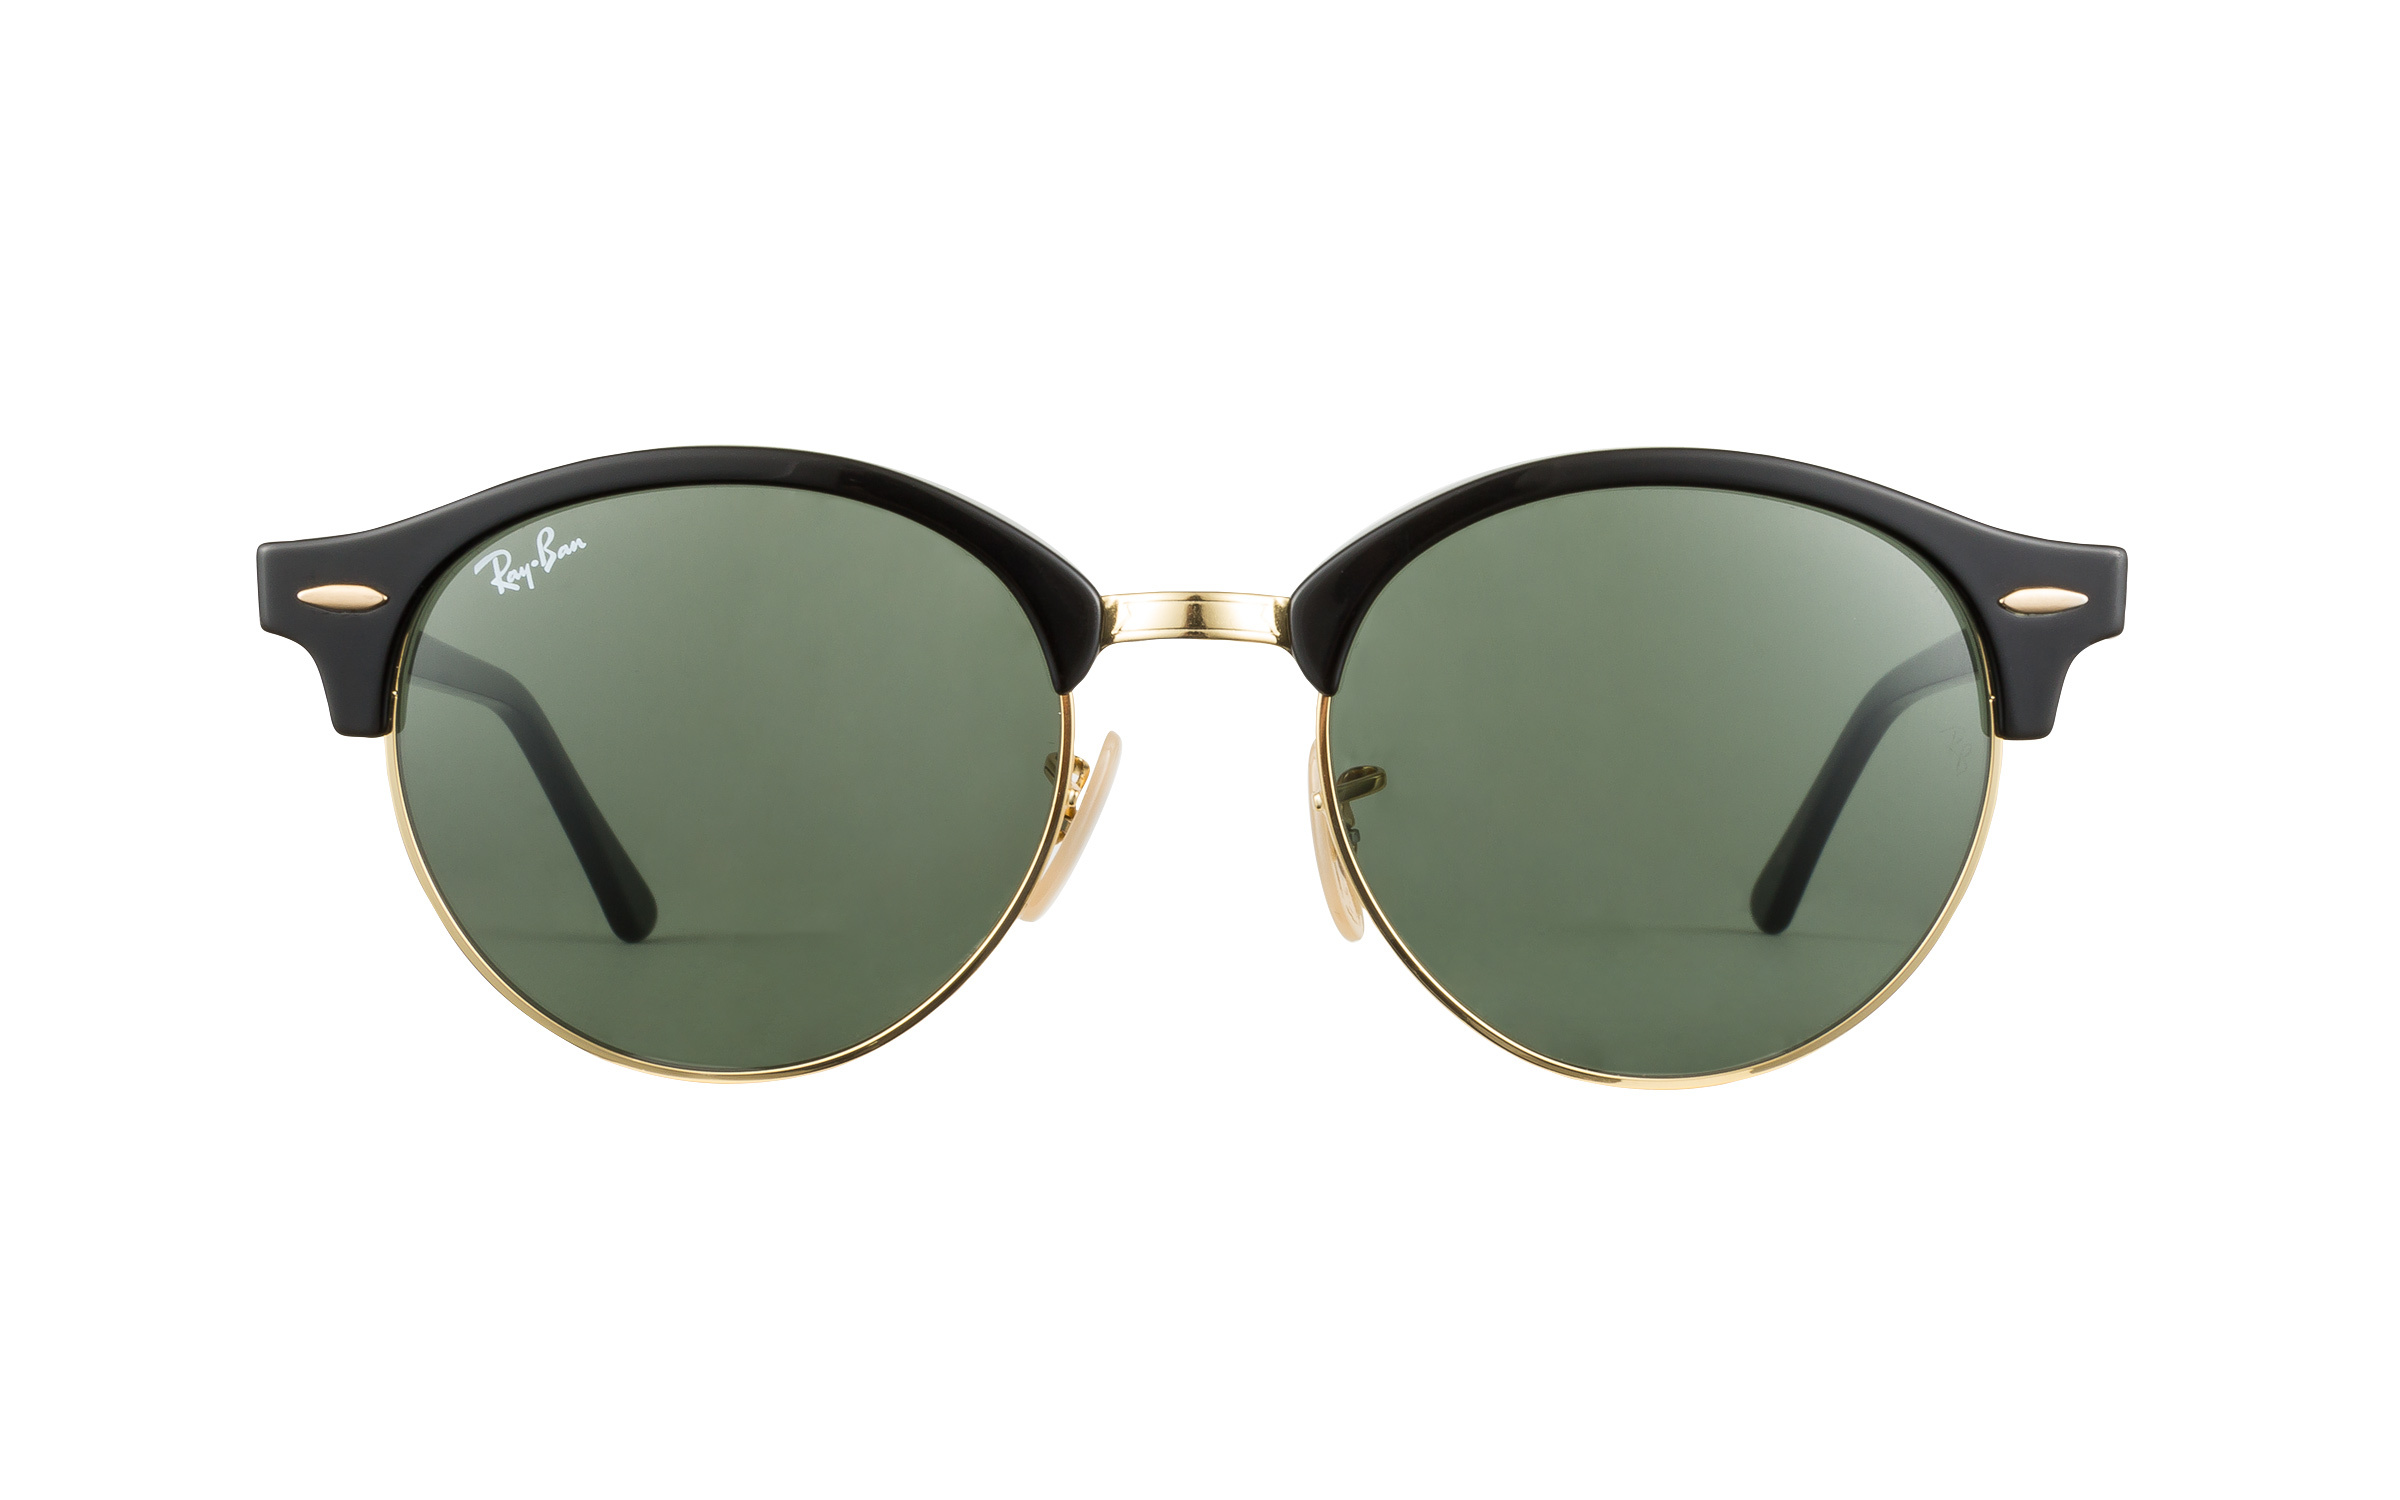 where can i buy ray ban lenses  Shop for Ray-Ban sunglasses online with friendly service and a ...